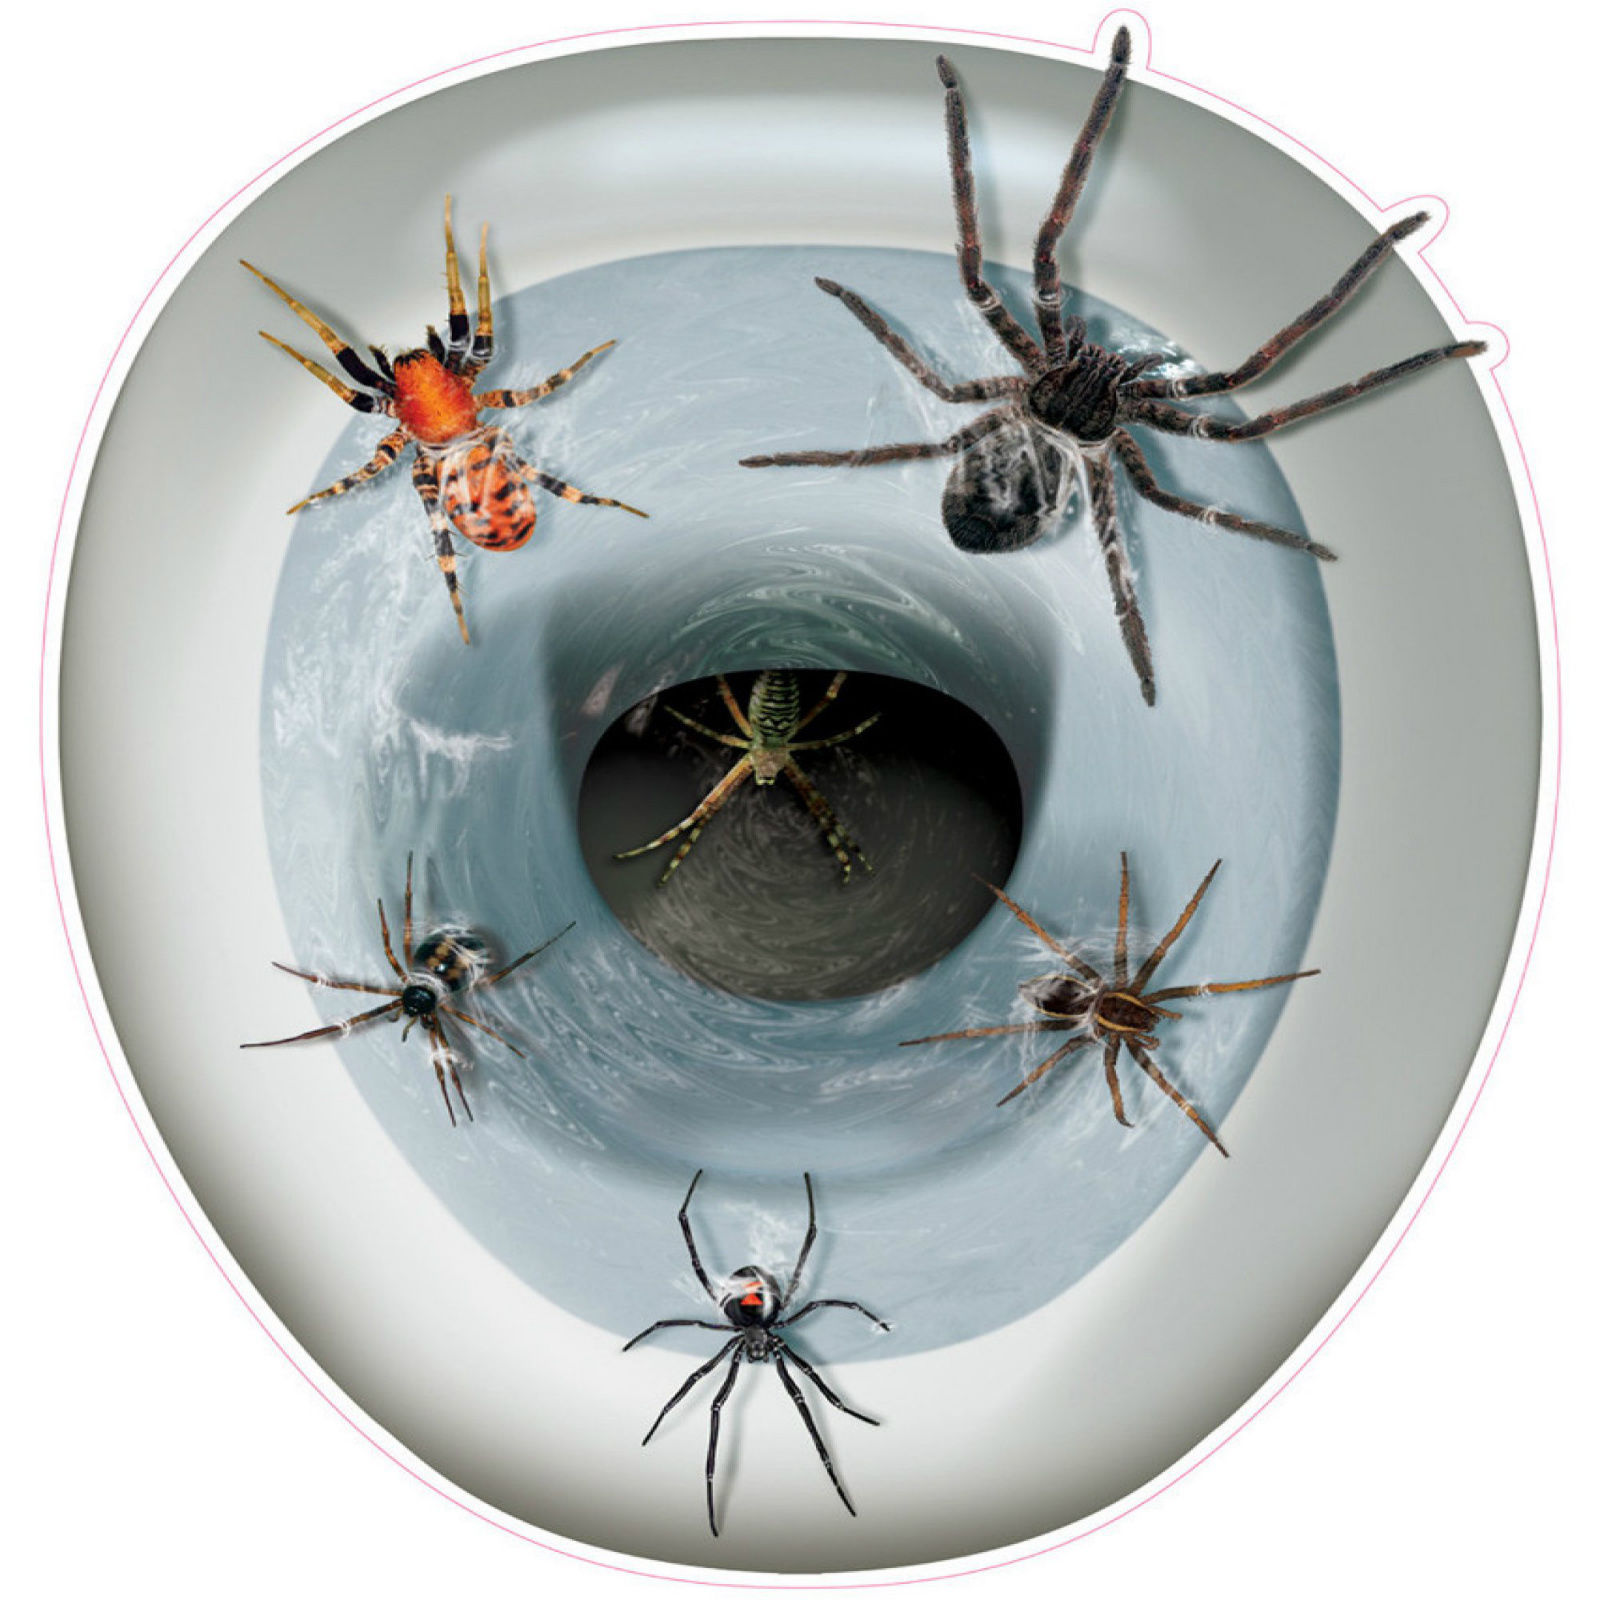 Novelty Toilet Seat Spider Cover Sticker Creepy Topper Removable Halloween Decor